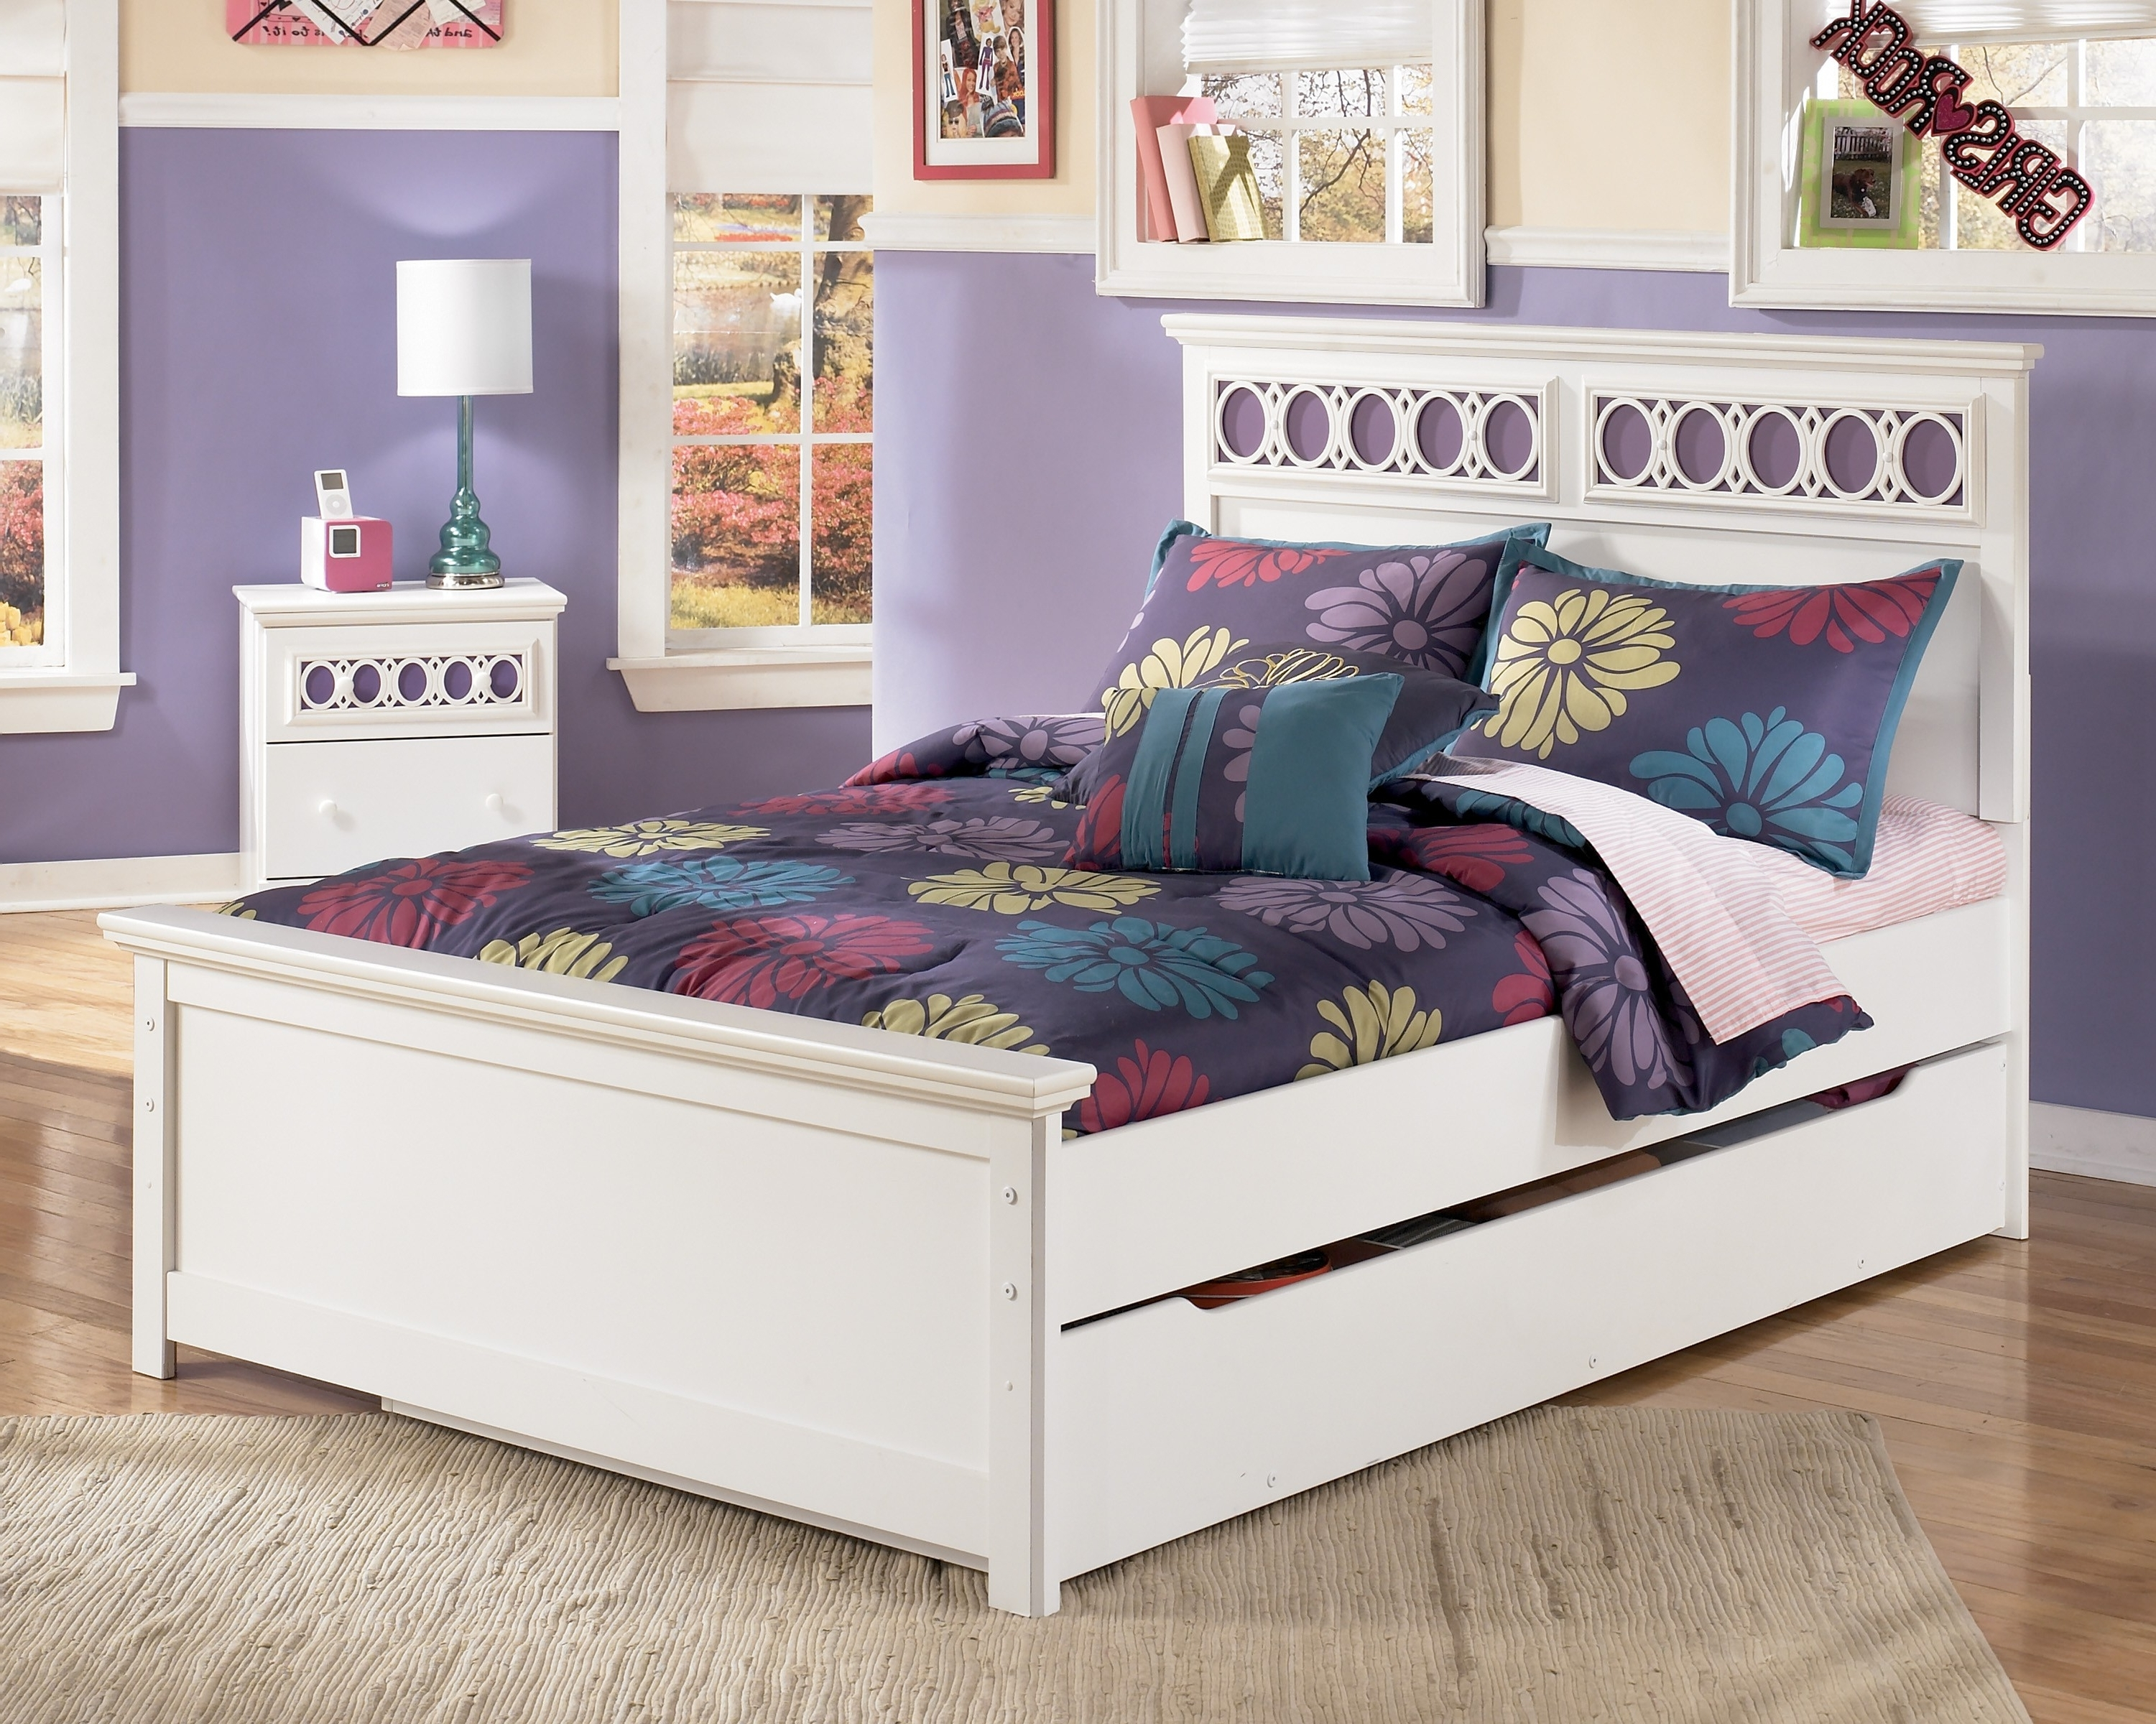 Zayley B131 Full Panel Bed With Trundle Storage Box Intended For Well Known Zayley Full Bed Bookcases (Gallery 14 of 15)